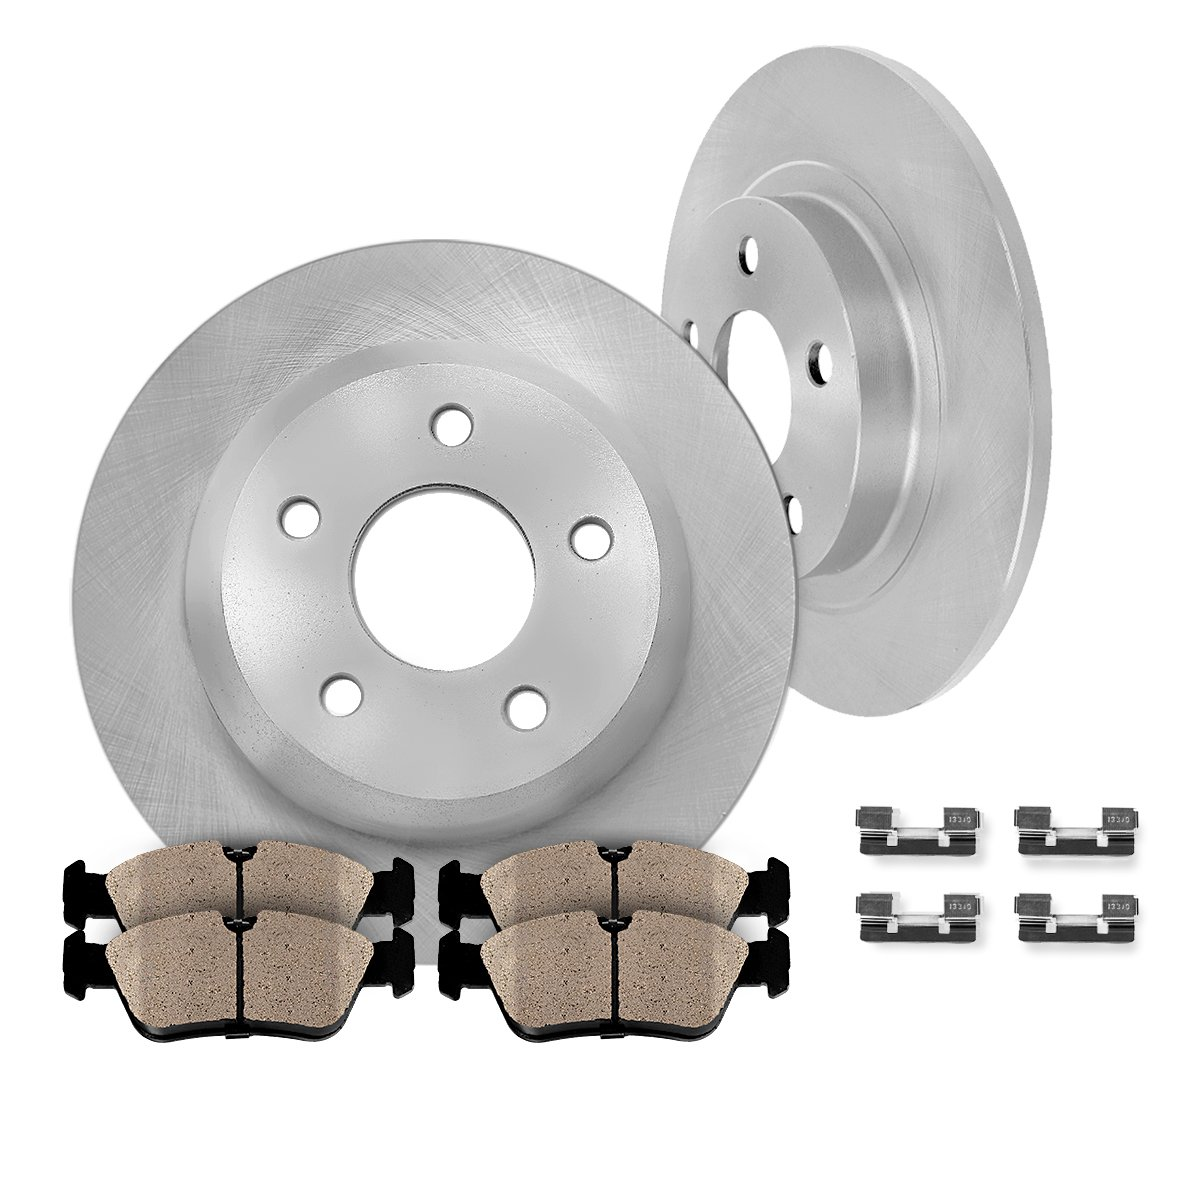 REAR 291.3 mm Premium OE 5 Lug [2] Brake Disc Rotors + [4] Ceramic Brake Pads + Clips